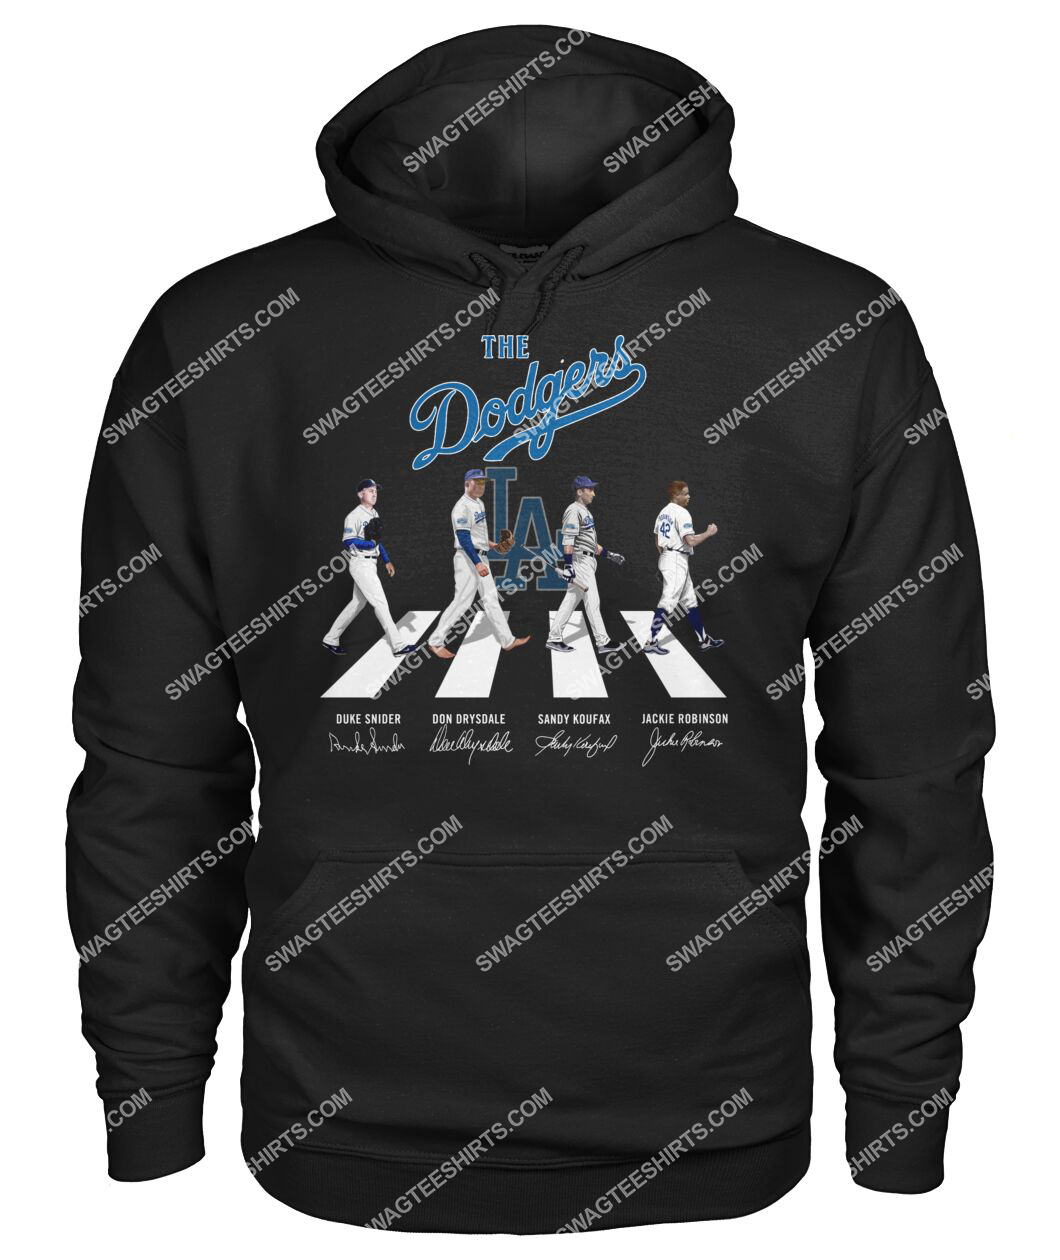 abbey road the los angeles dodgers signatures hoodie 1